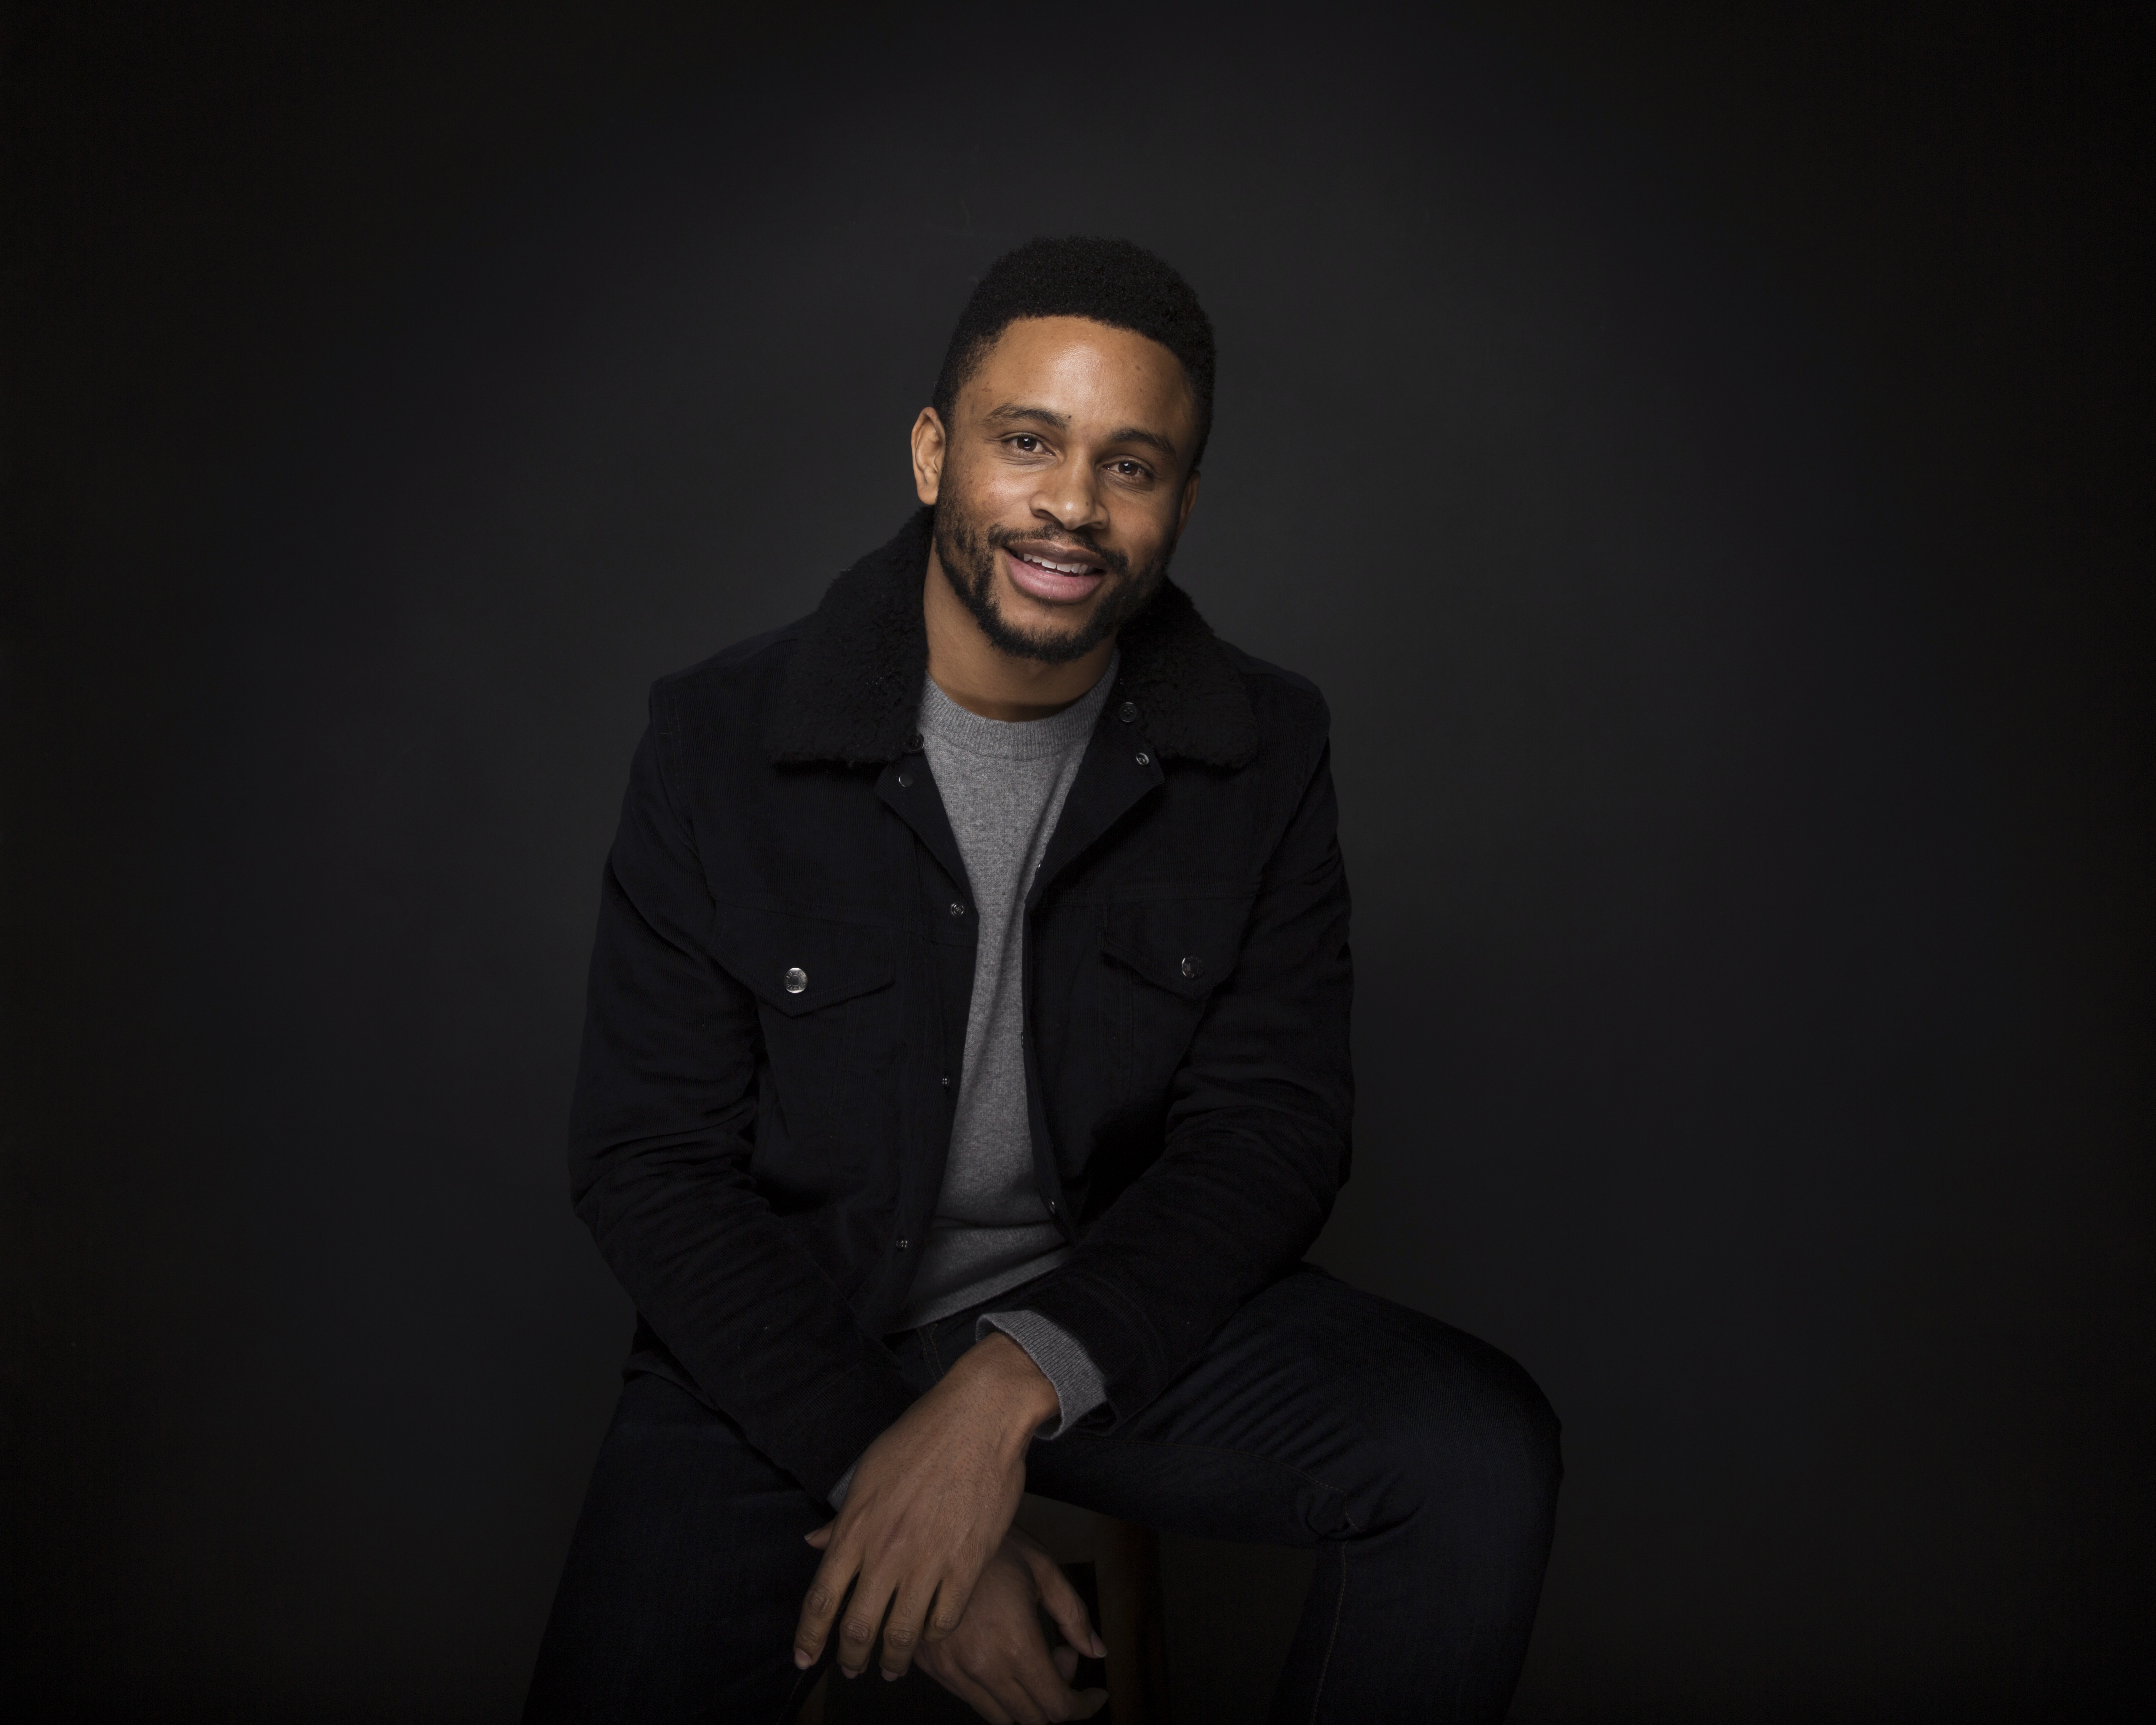 Nnamdi Asomugha pivots from star cornerback to star turn in soon-to-be-released film